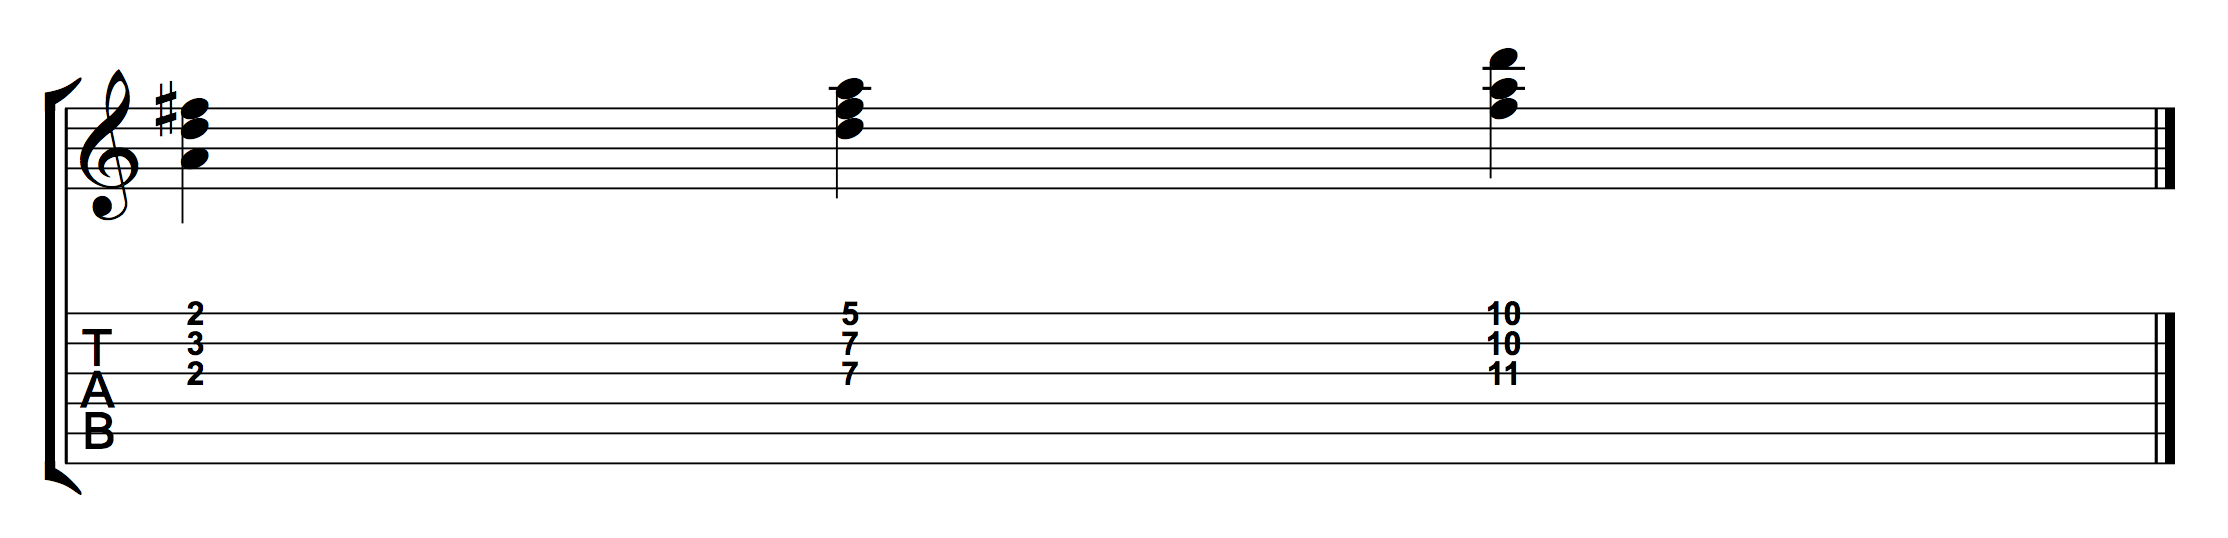 D Major Triad 3 Inversions